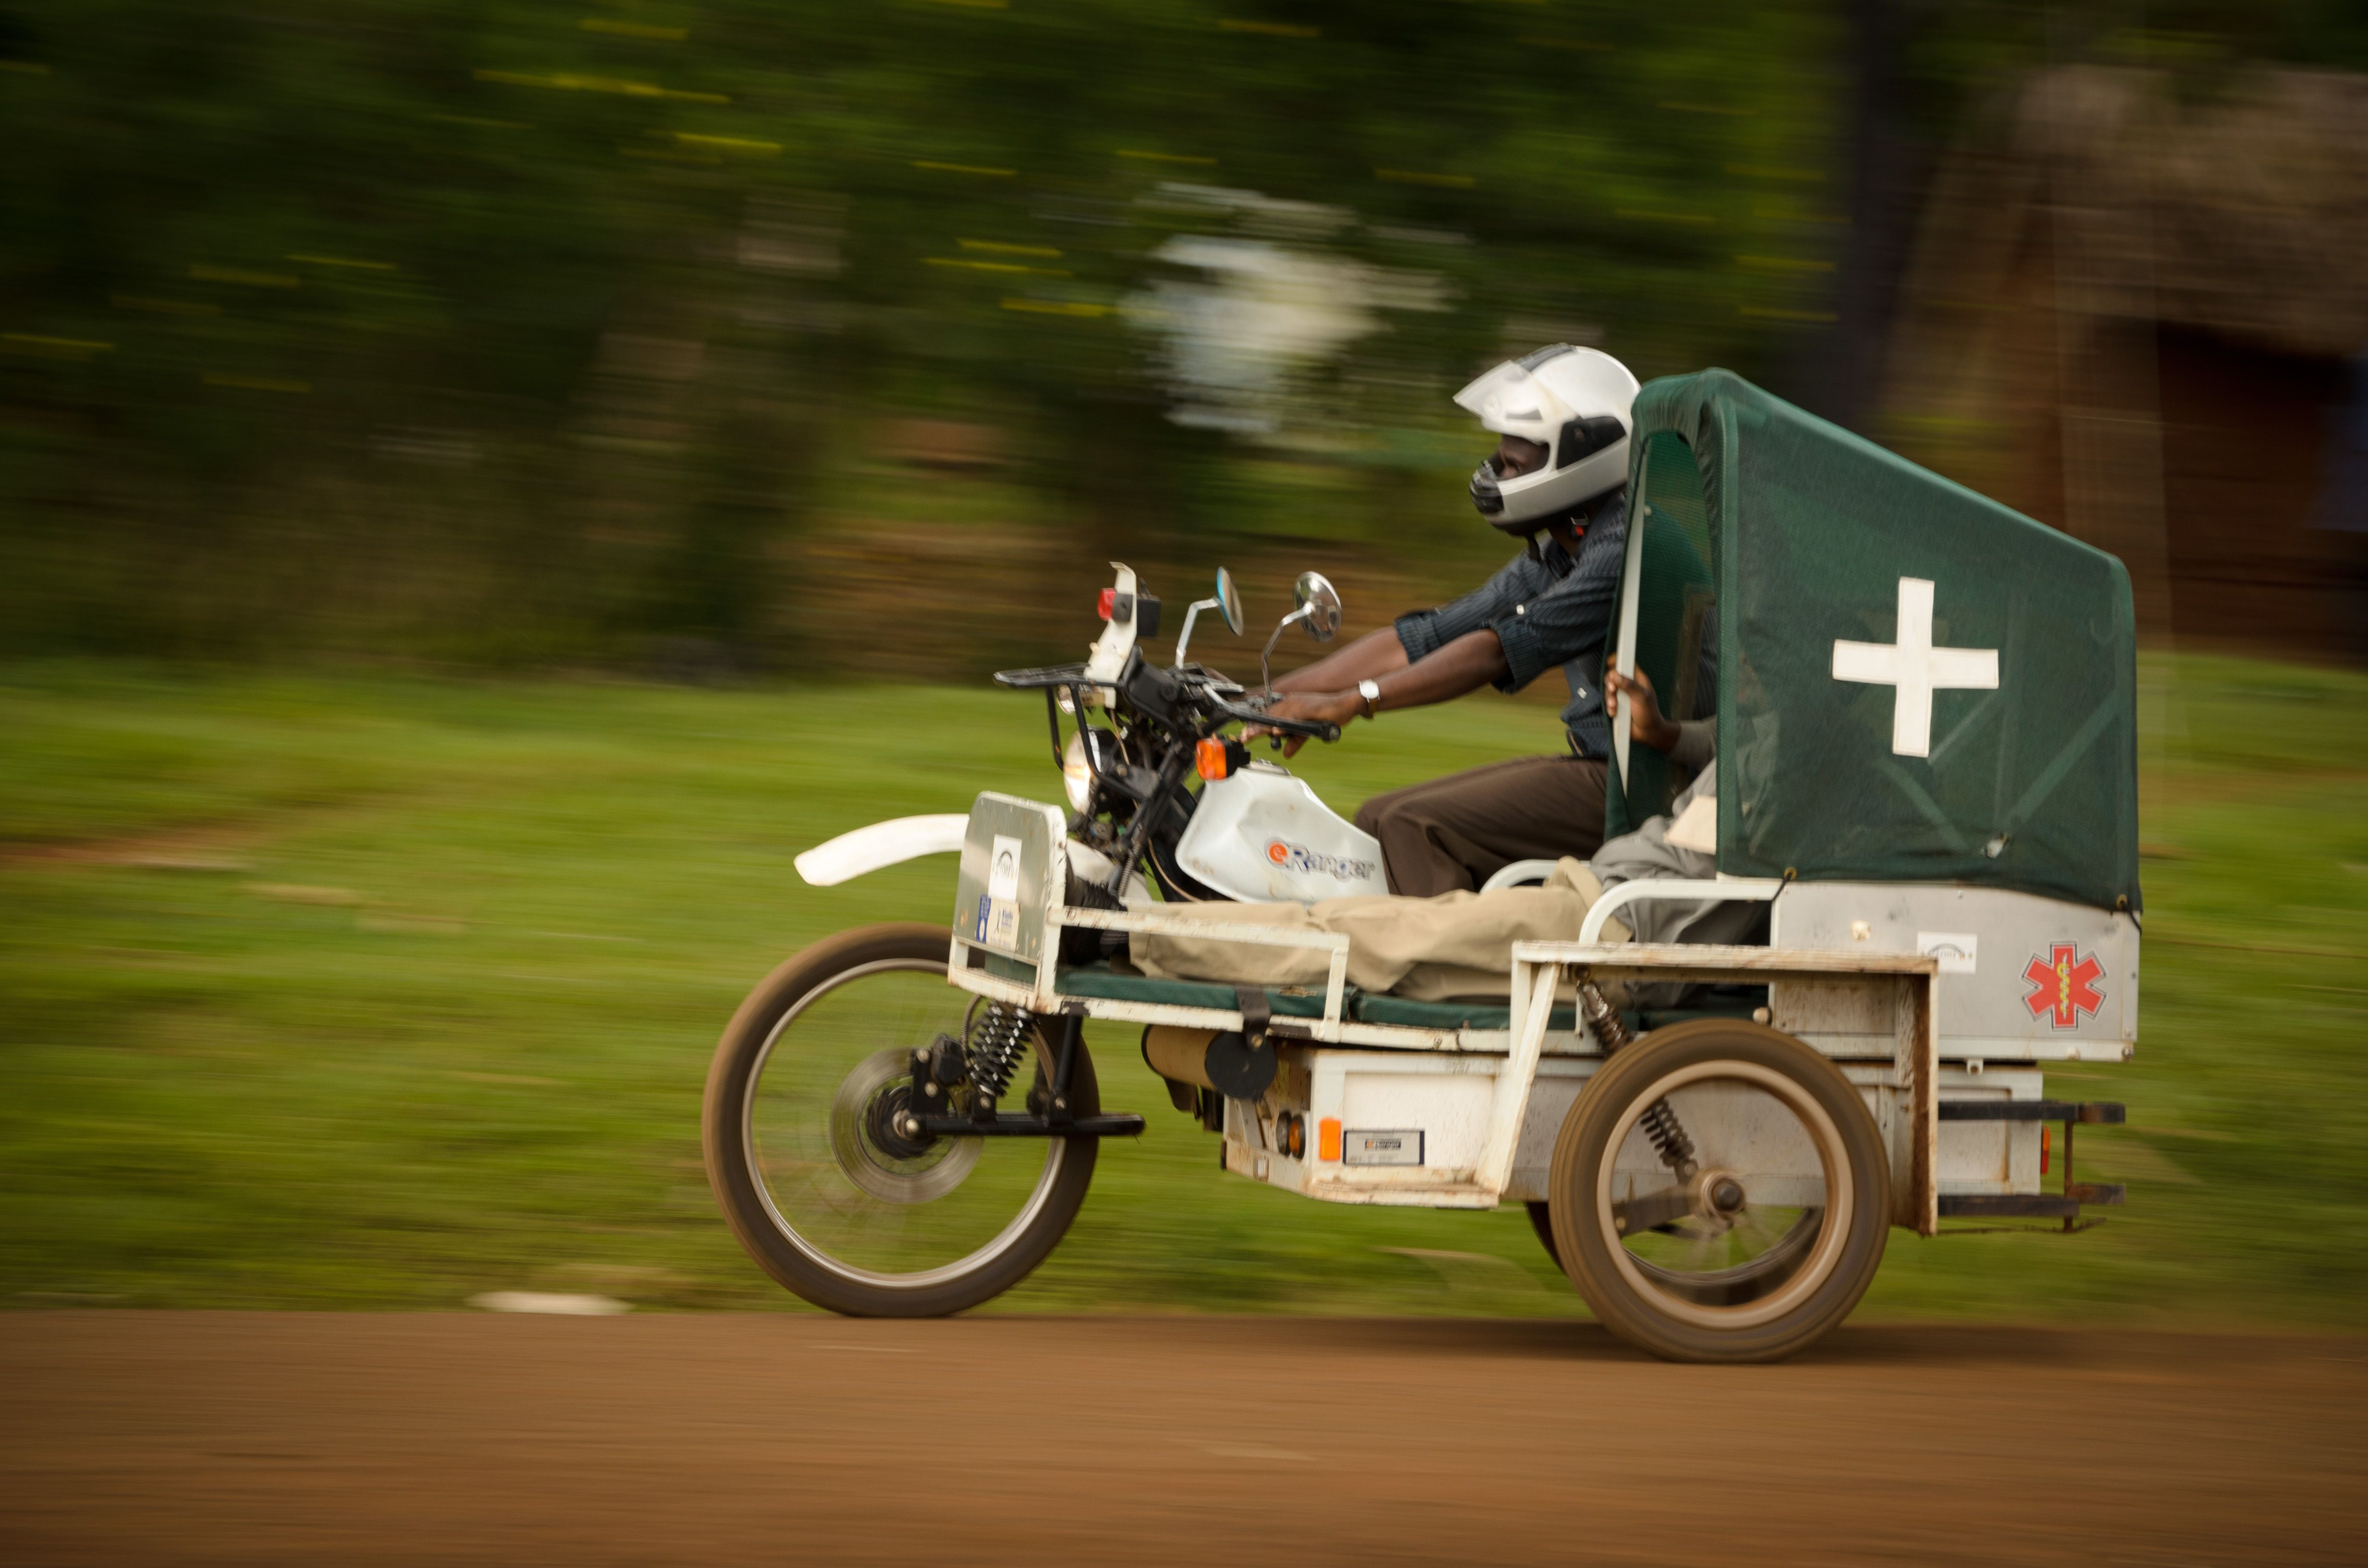 african ambulance Emergency vehicles, Motorcycle, Africa